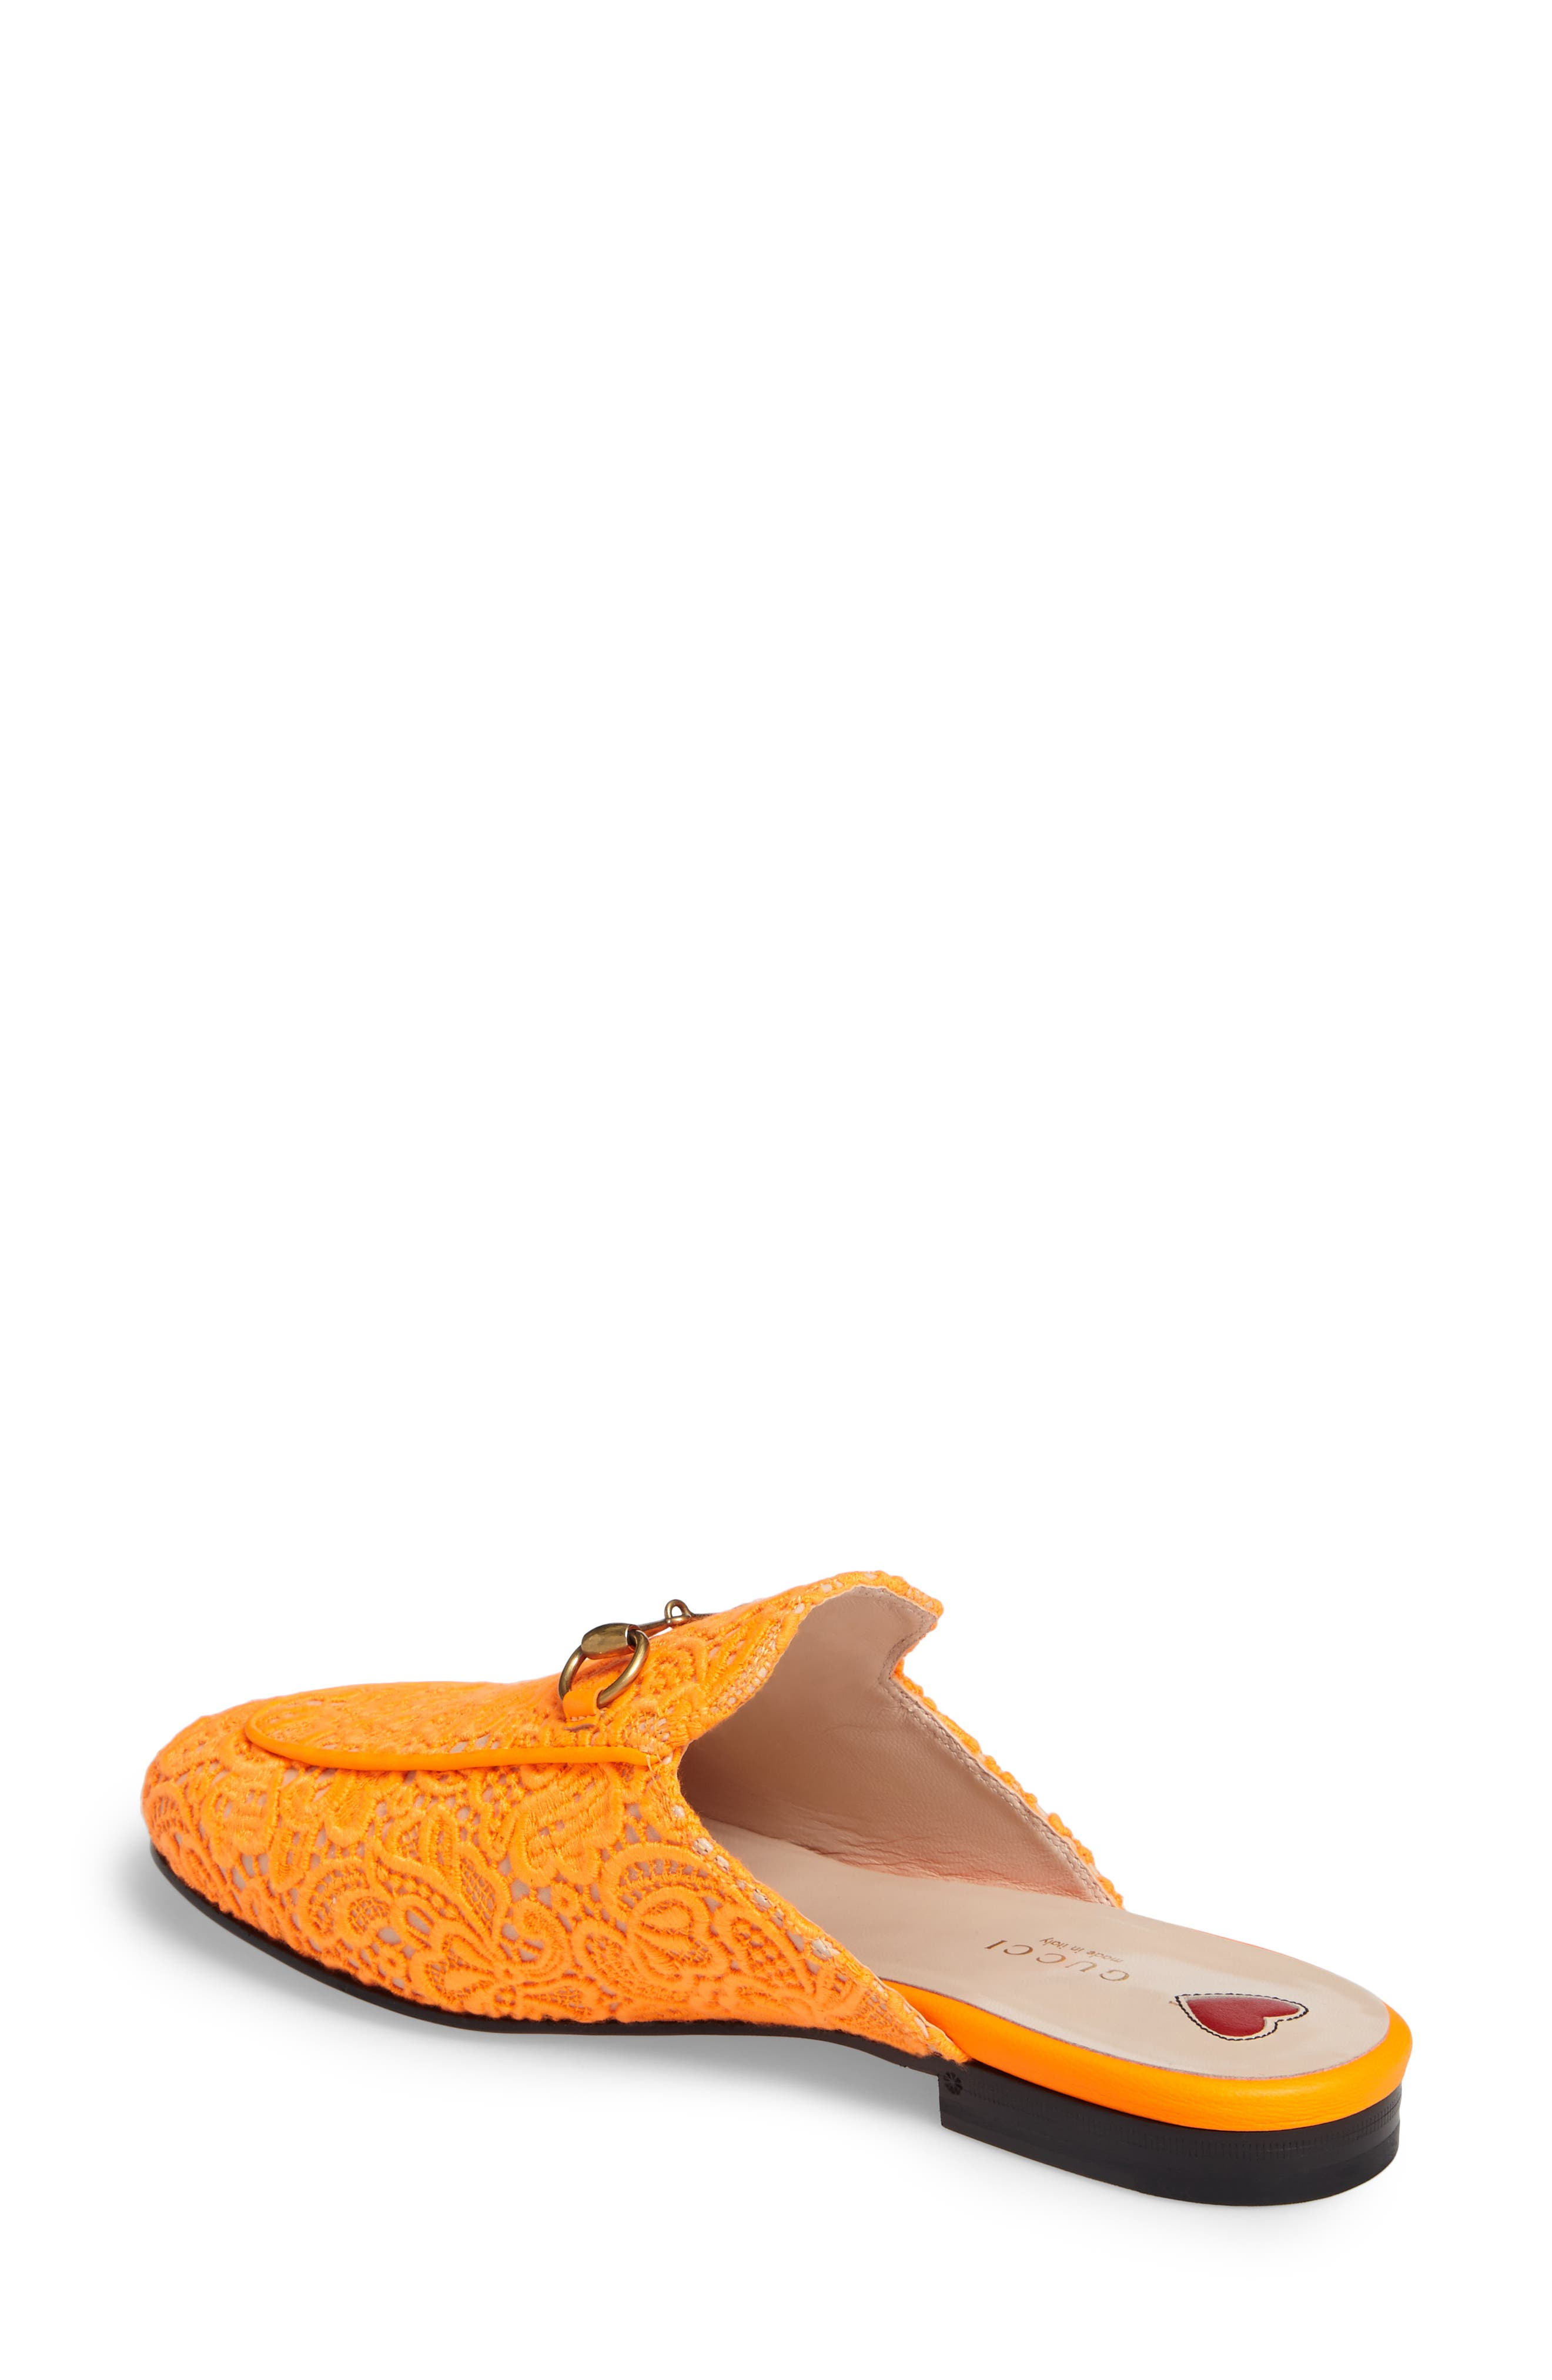 Princetown Loafer Mule,                             Alternate thumbnail 2, color,                             800